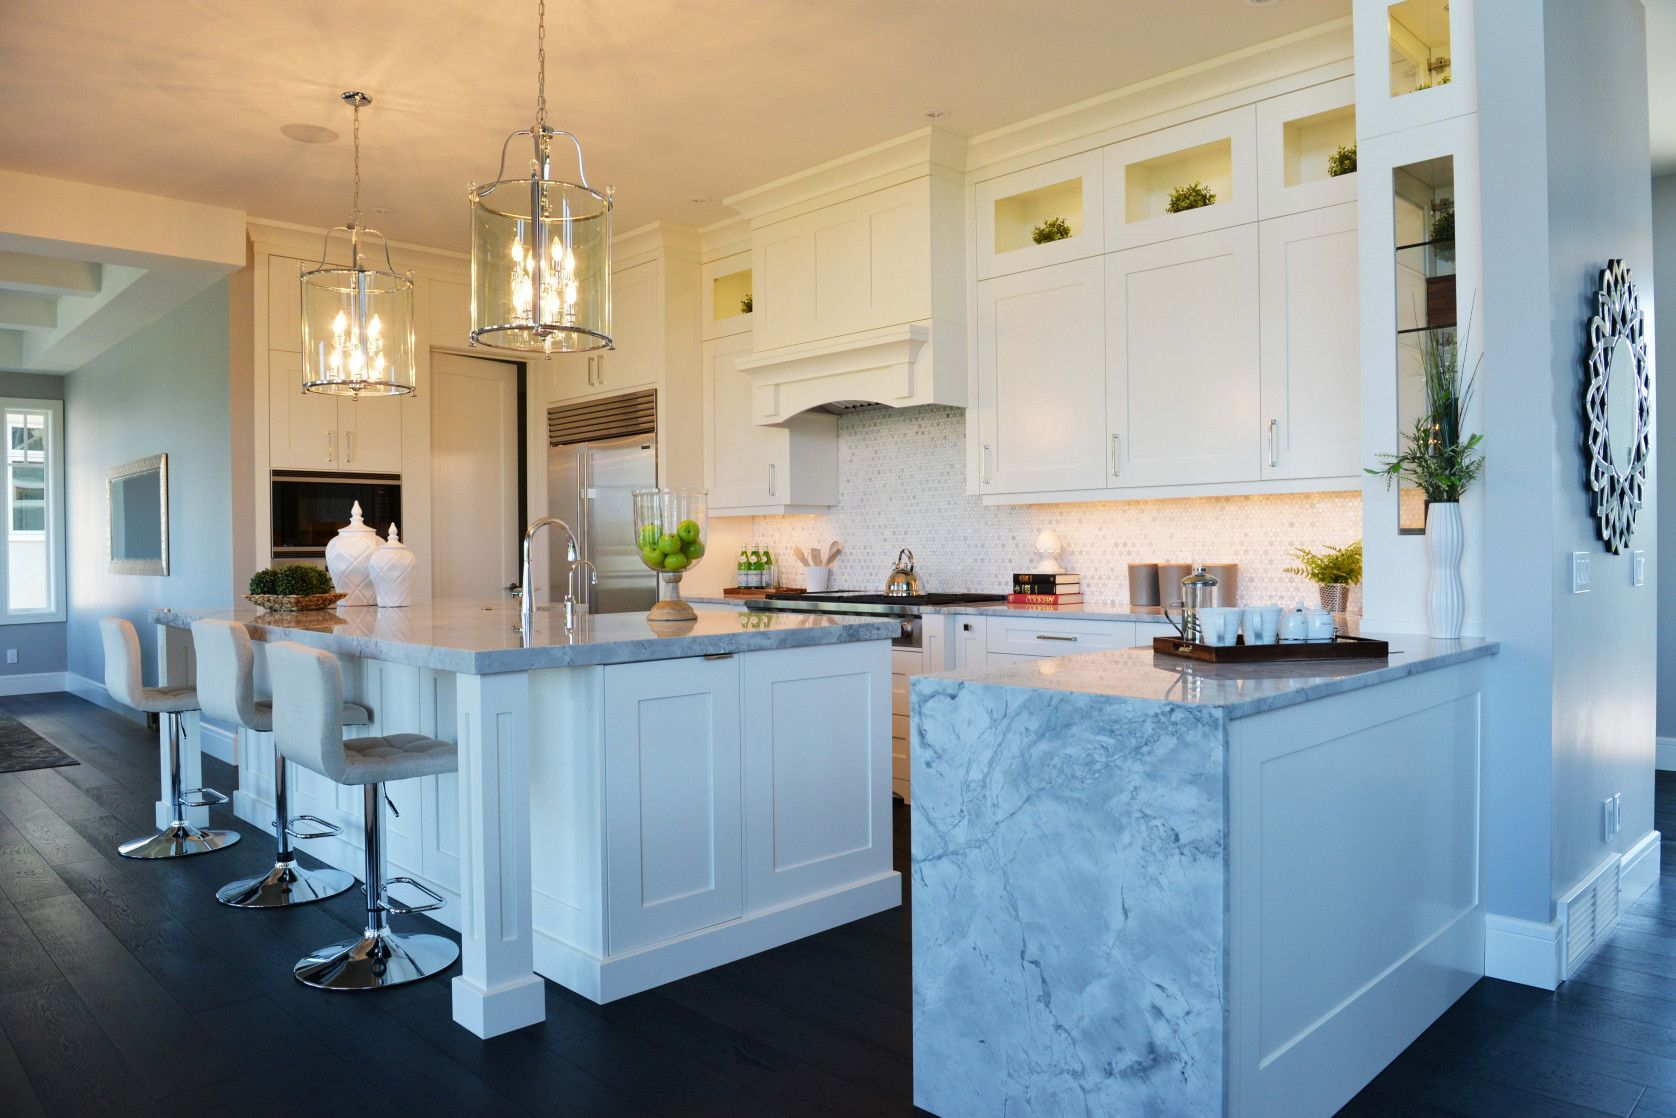 2019 High End Kitchen Cabinets - Small Kitchen island Ideas with ...